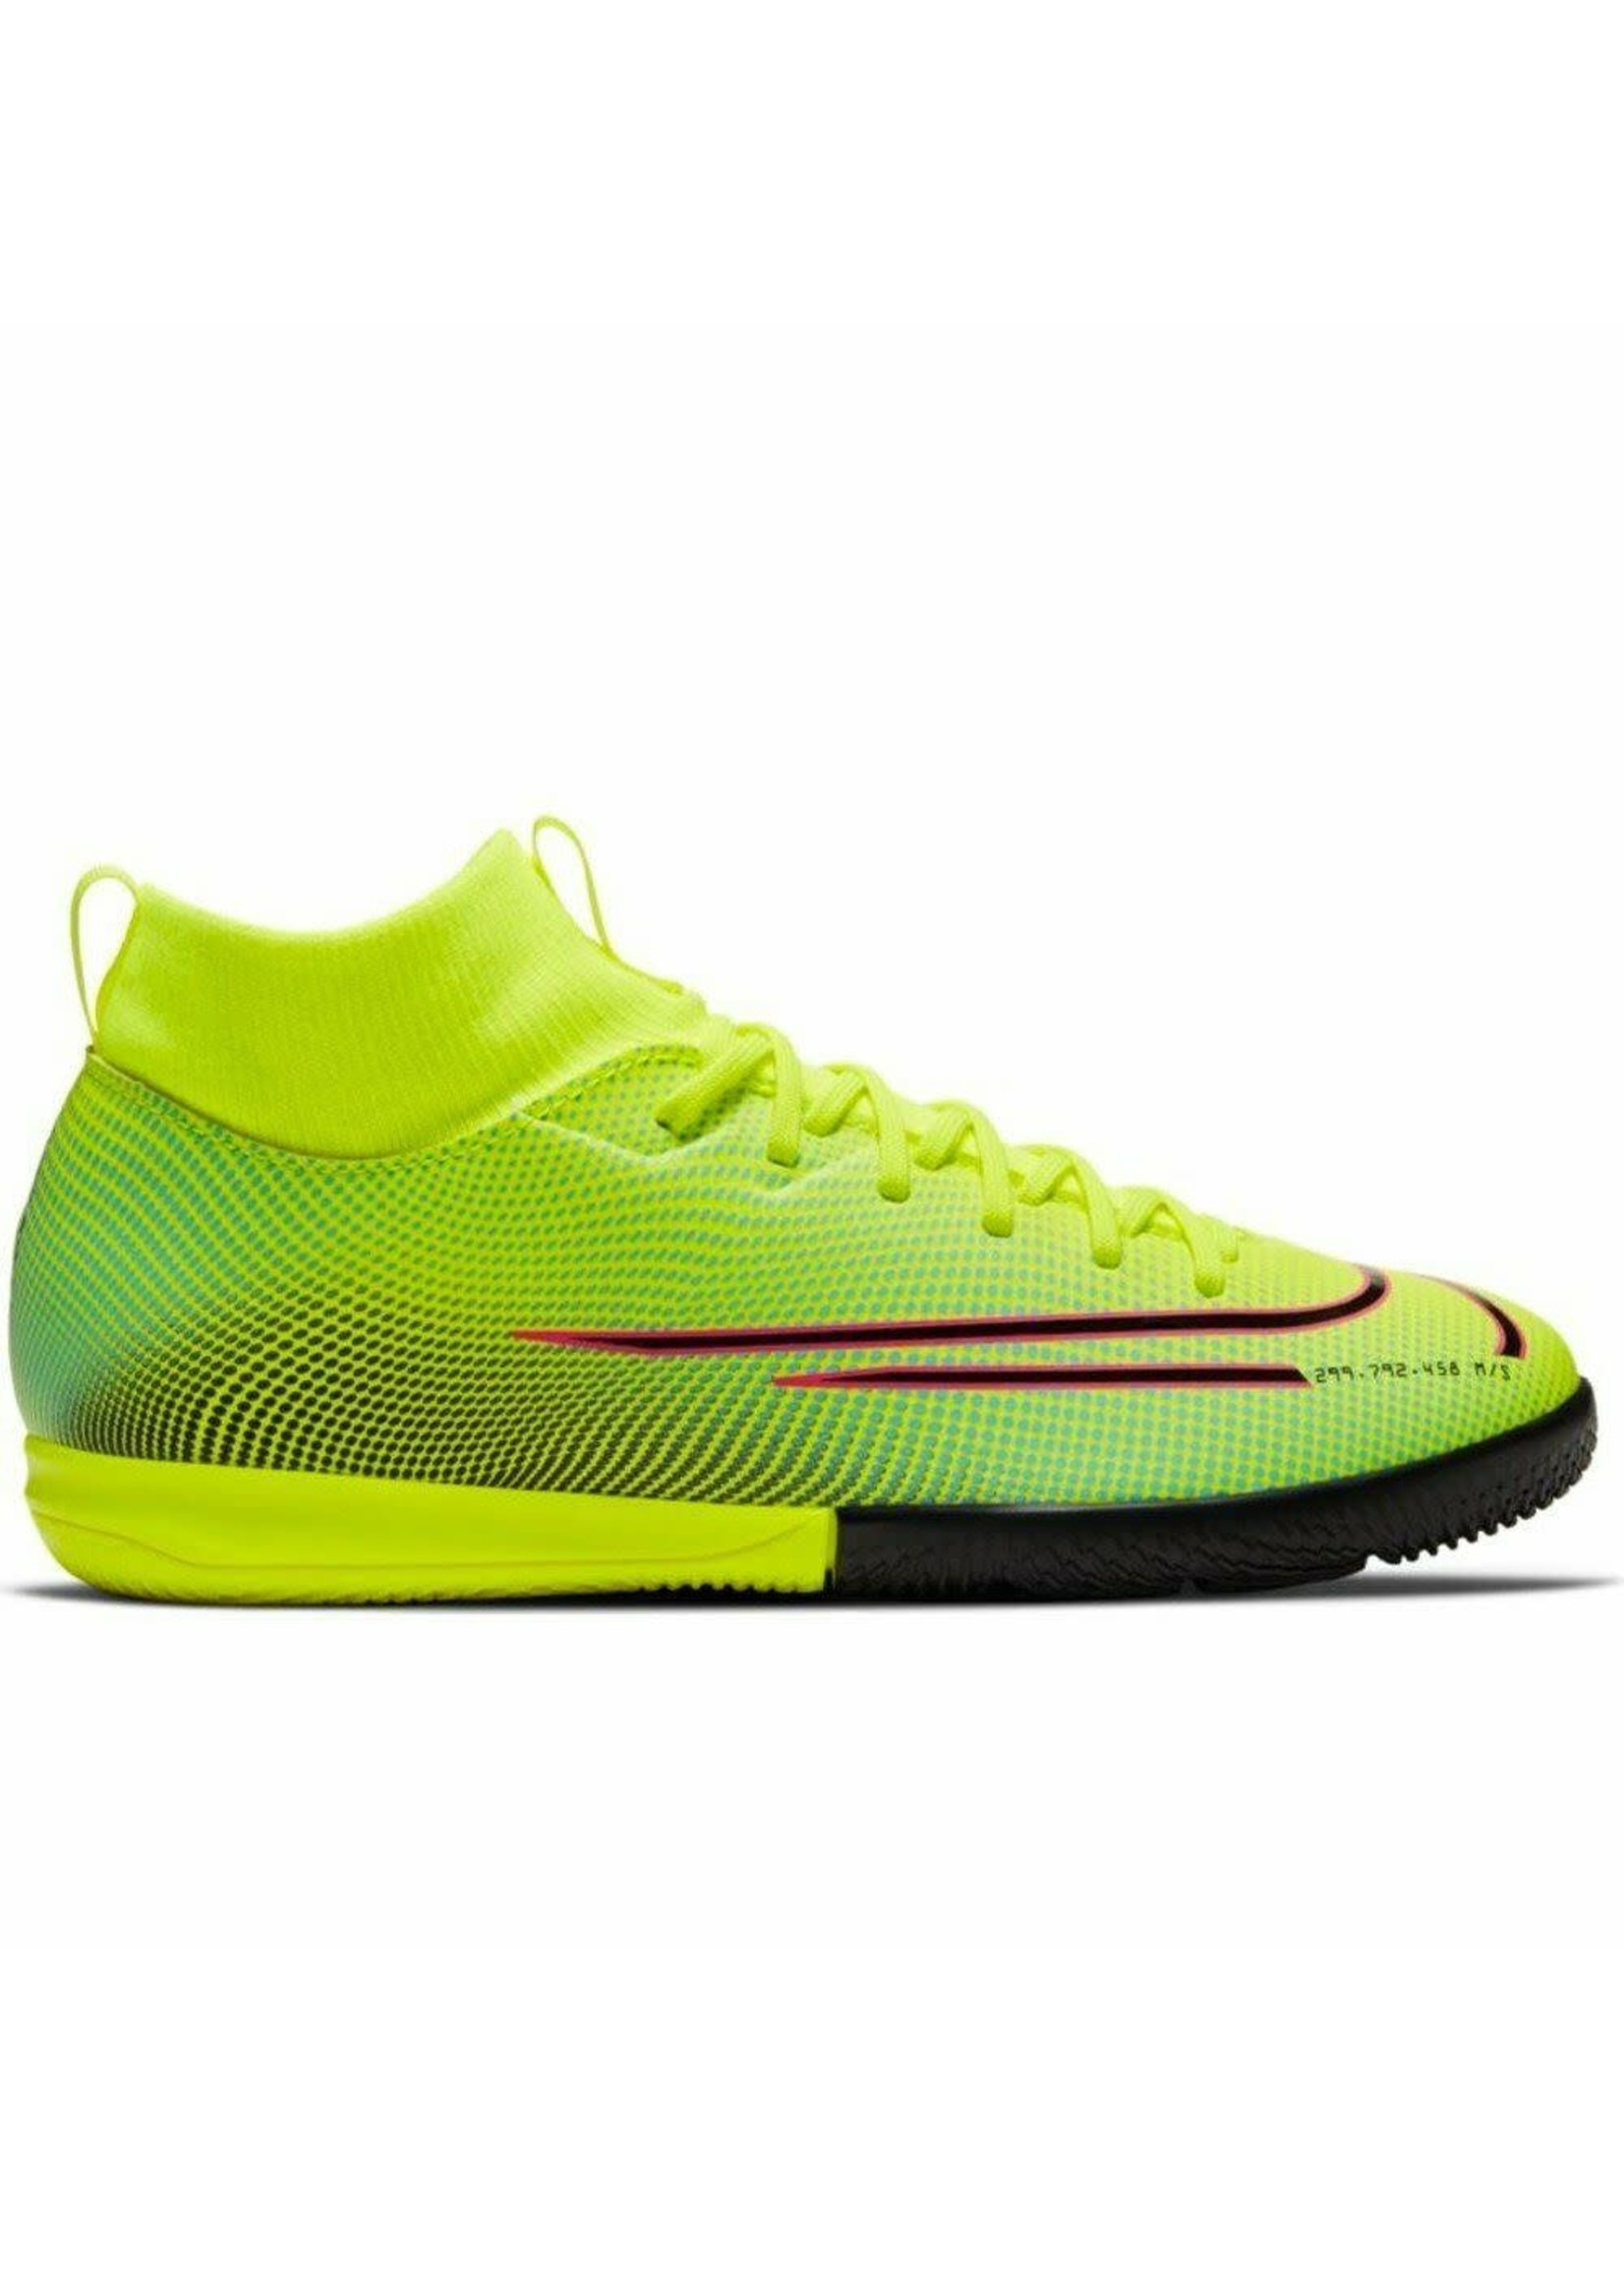 Nike Jr Superfly 7 Academy MDS IC - Lime/Red